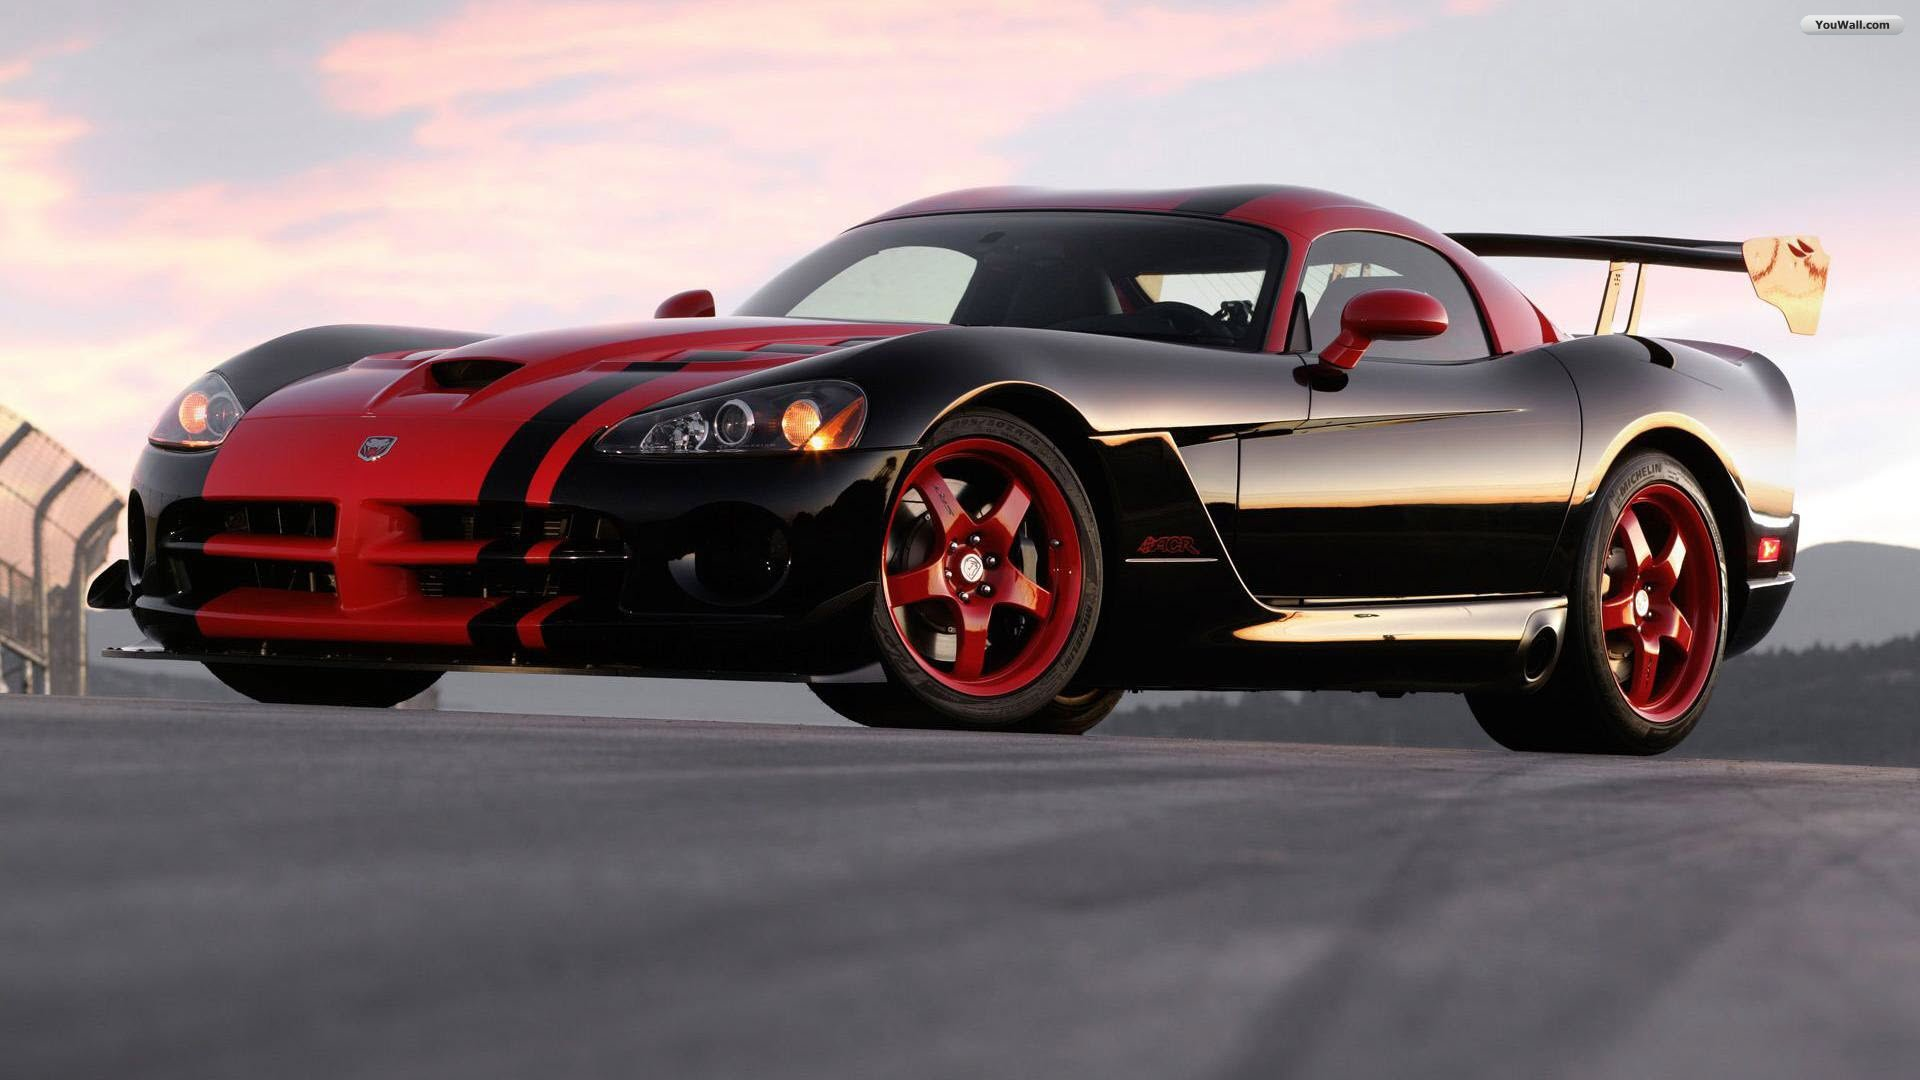 2015 dodge viper acr high definition picture wallpaper setup